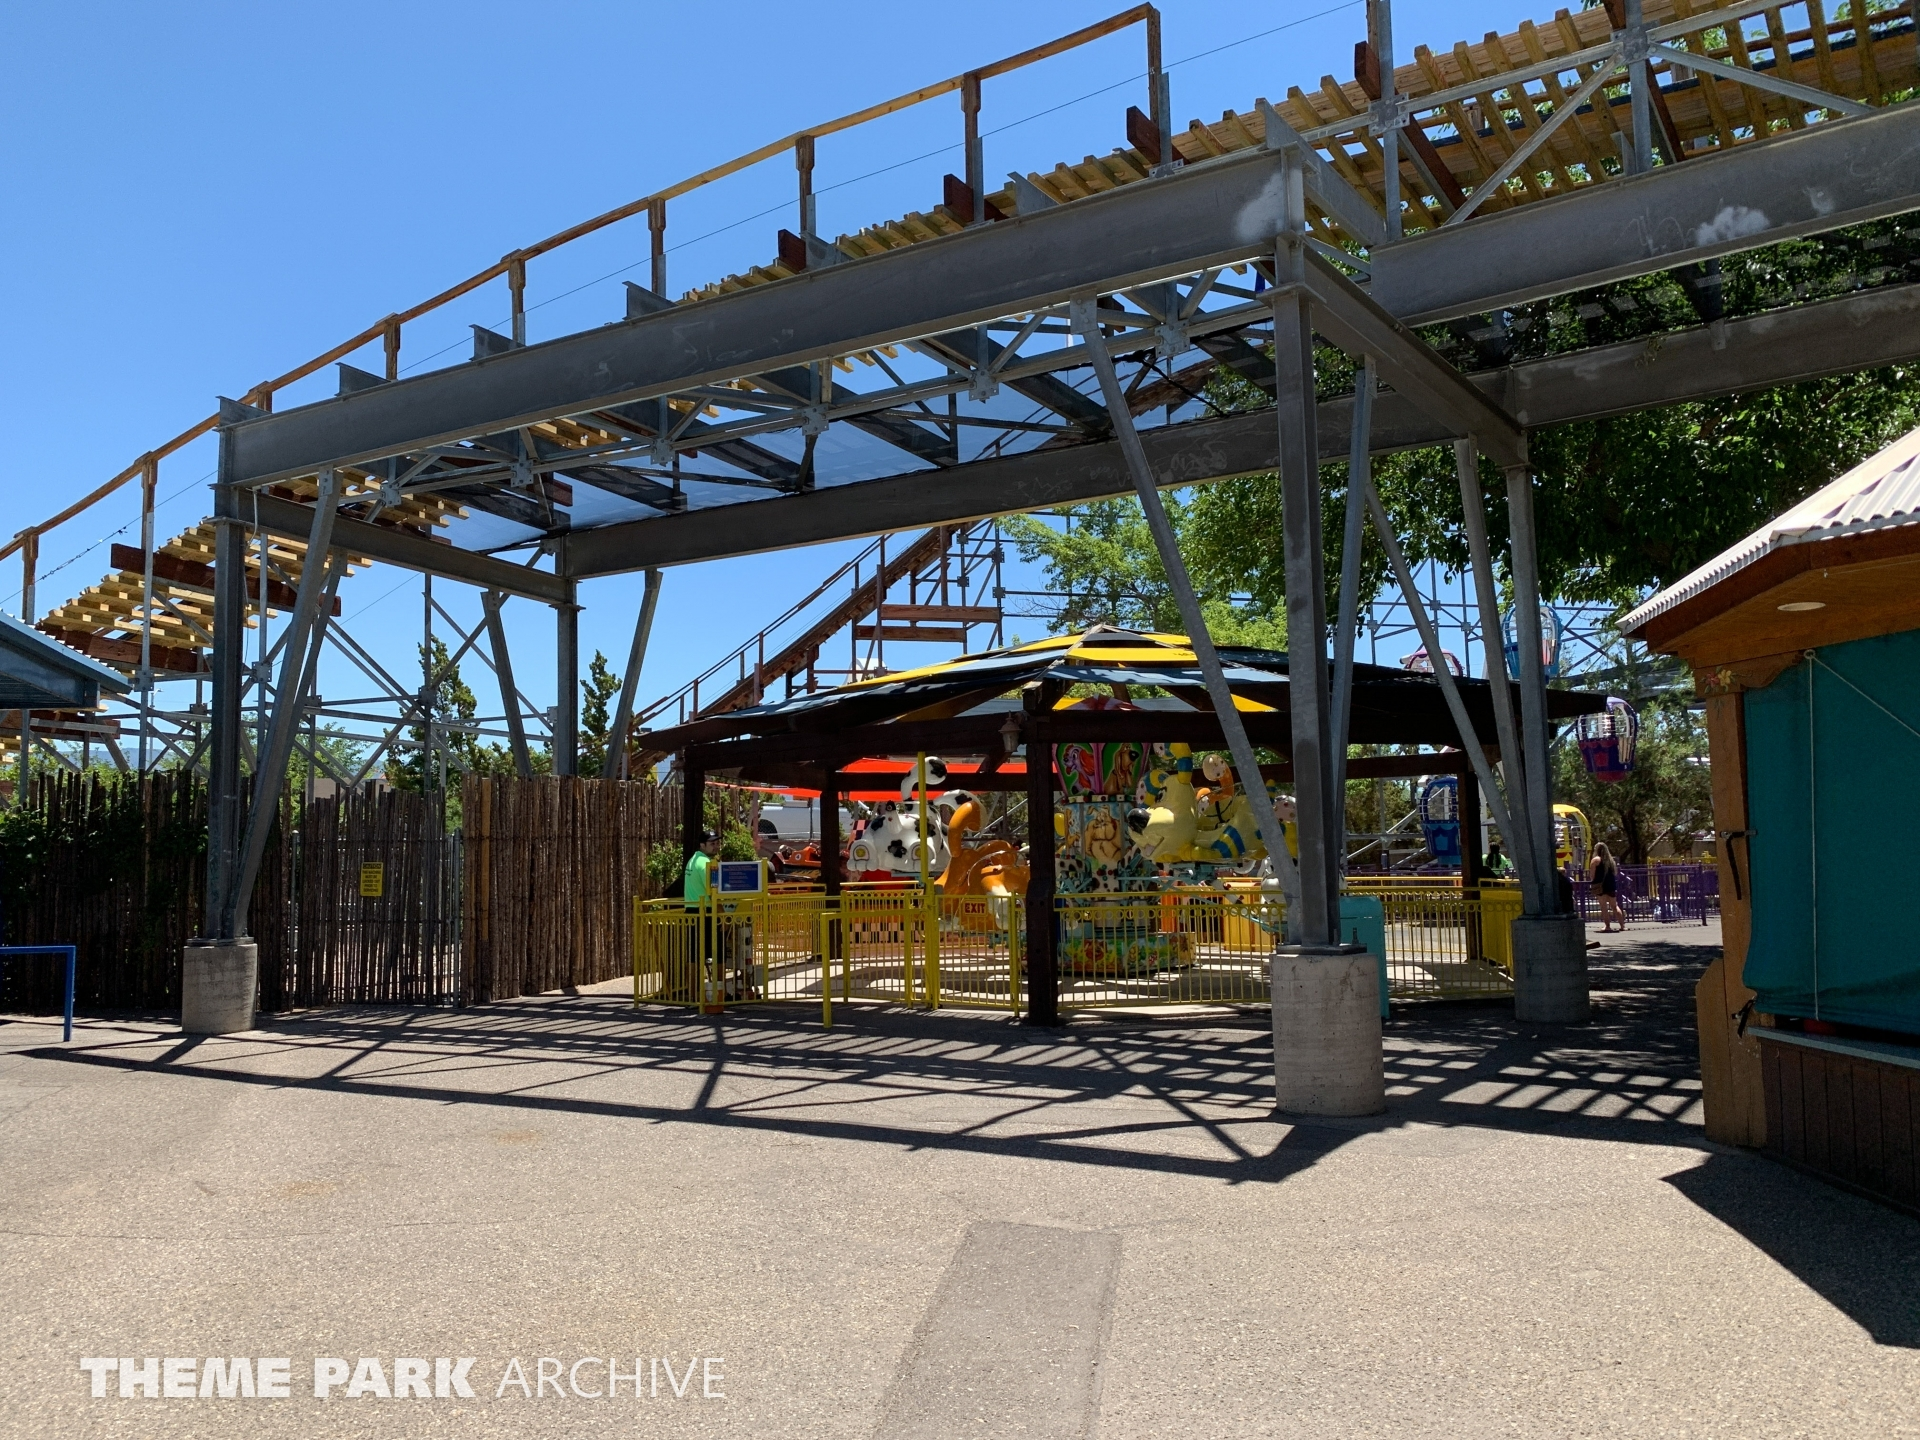 New Mexico Rattler at Cliff's Amusement Park